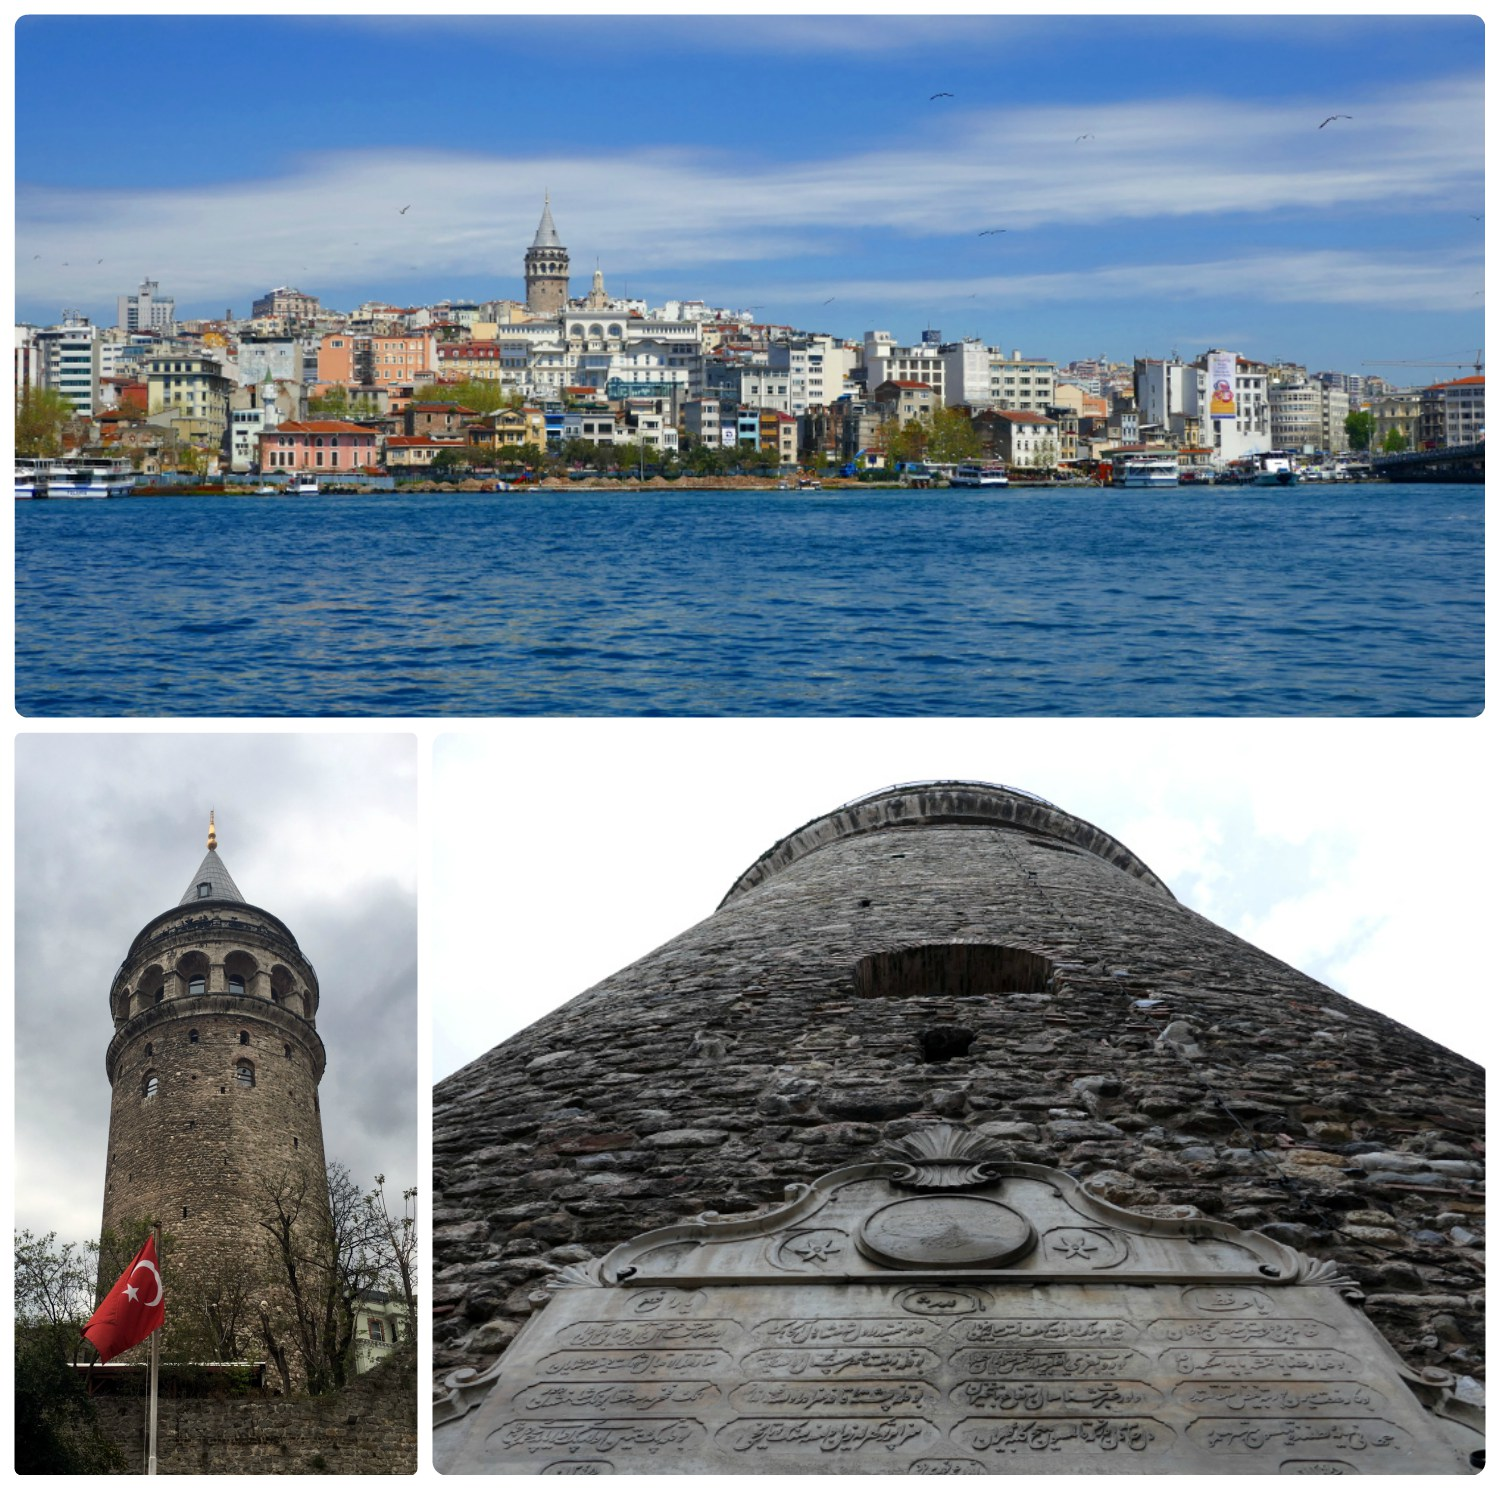 Clockwise (from the top): View of Galata Tower from across the Golden Horn, Galata Tower with the Turkish Flag, view of Galata Twoer up close.